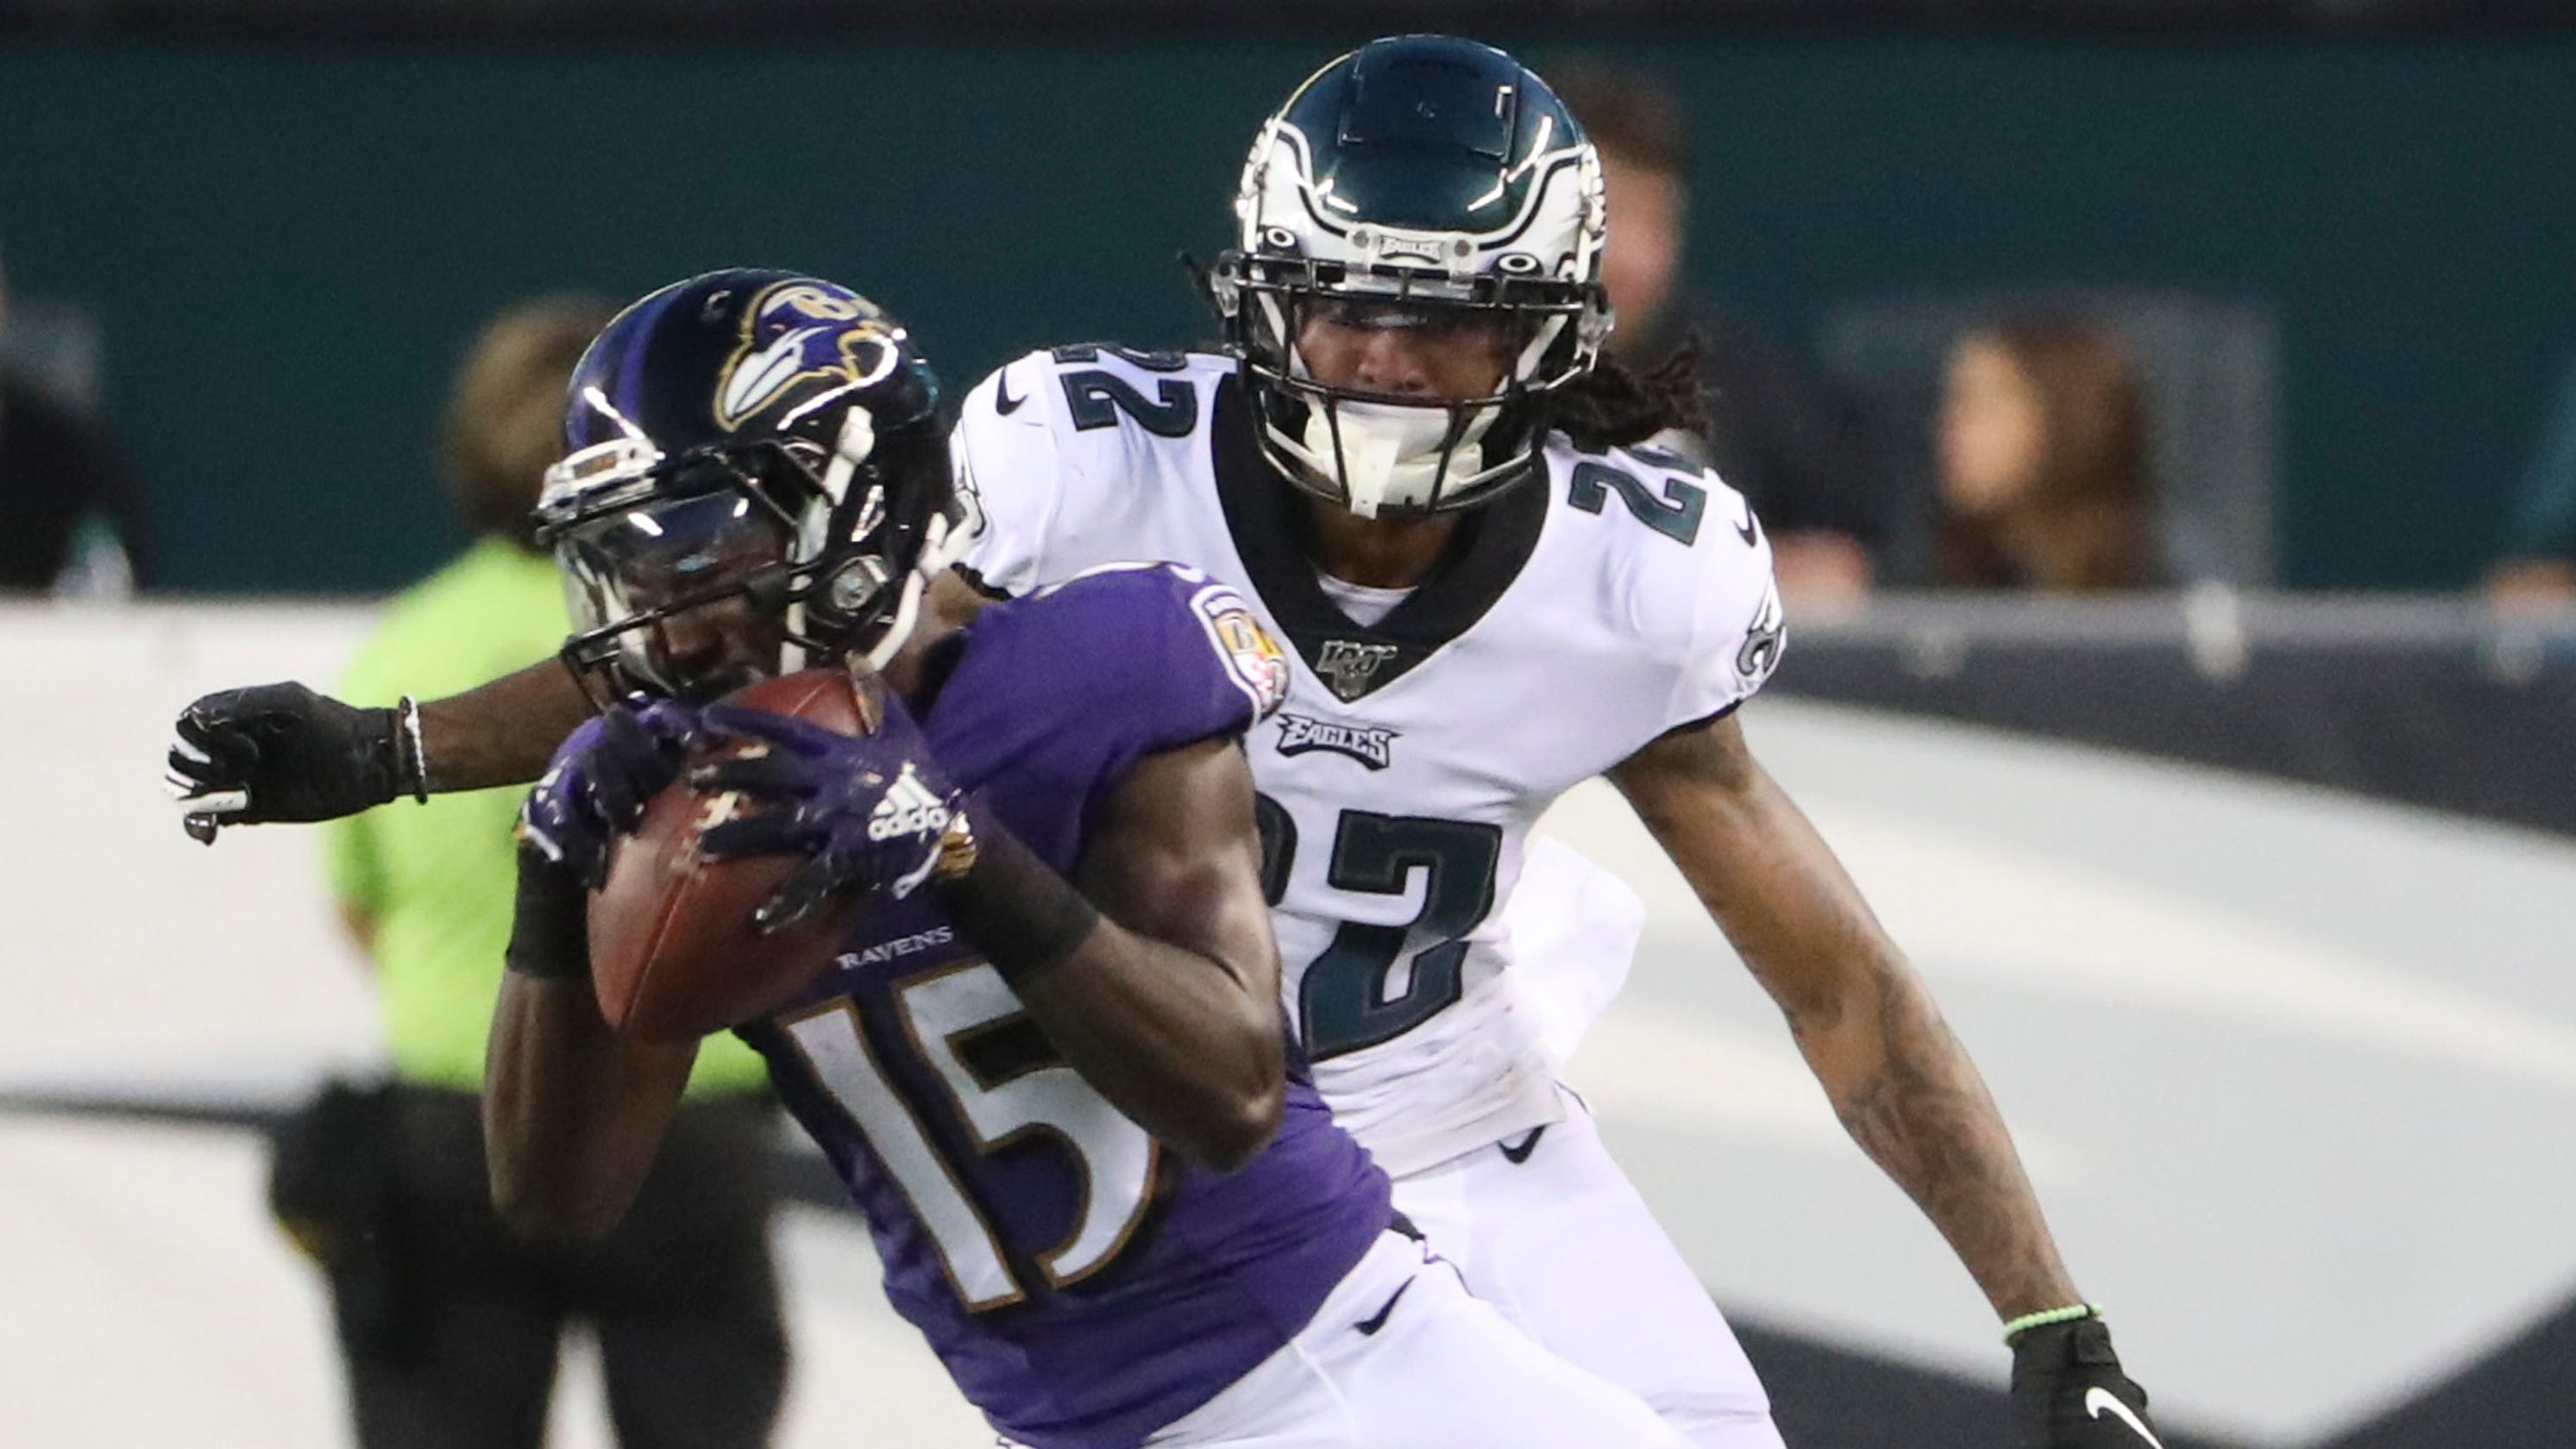 ravens vs eagles - photo #4